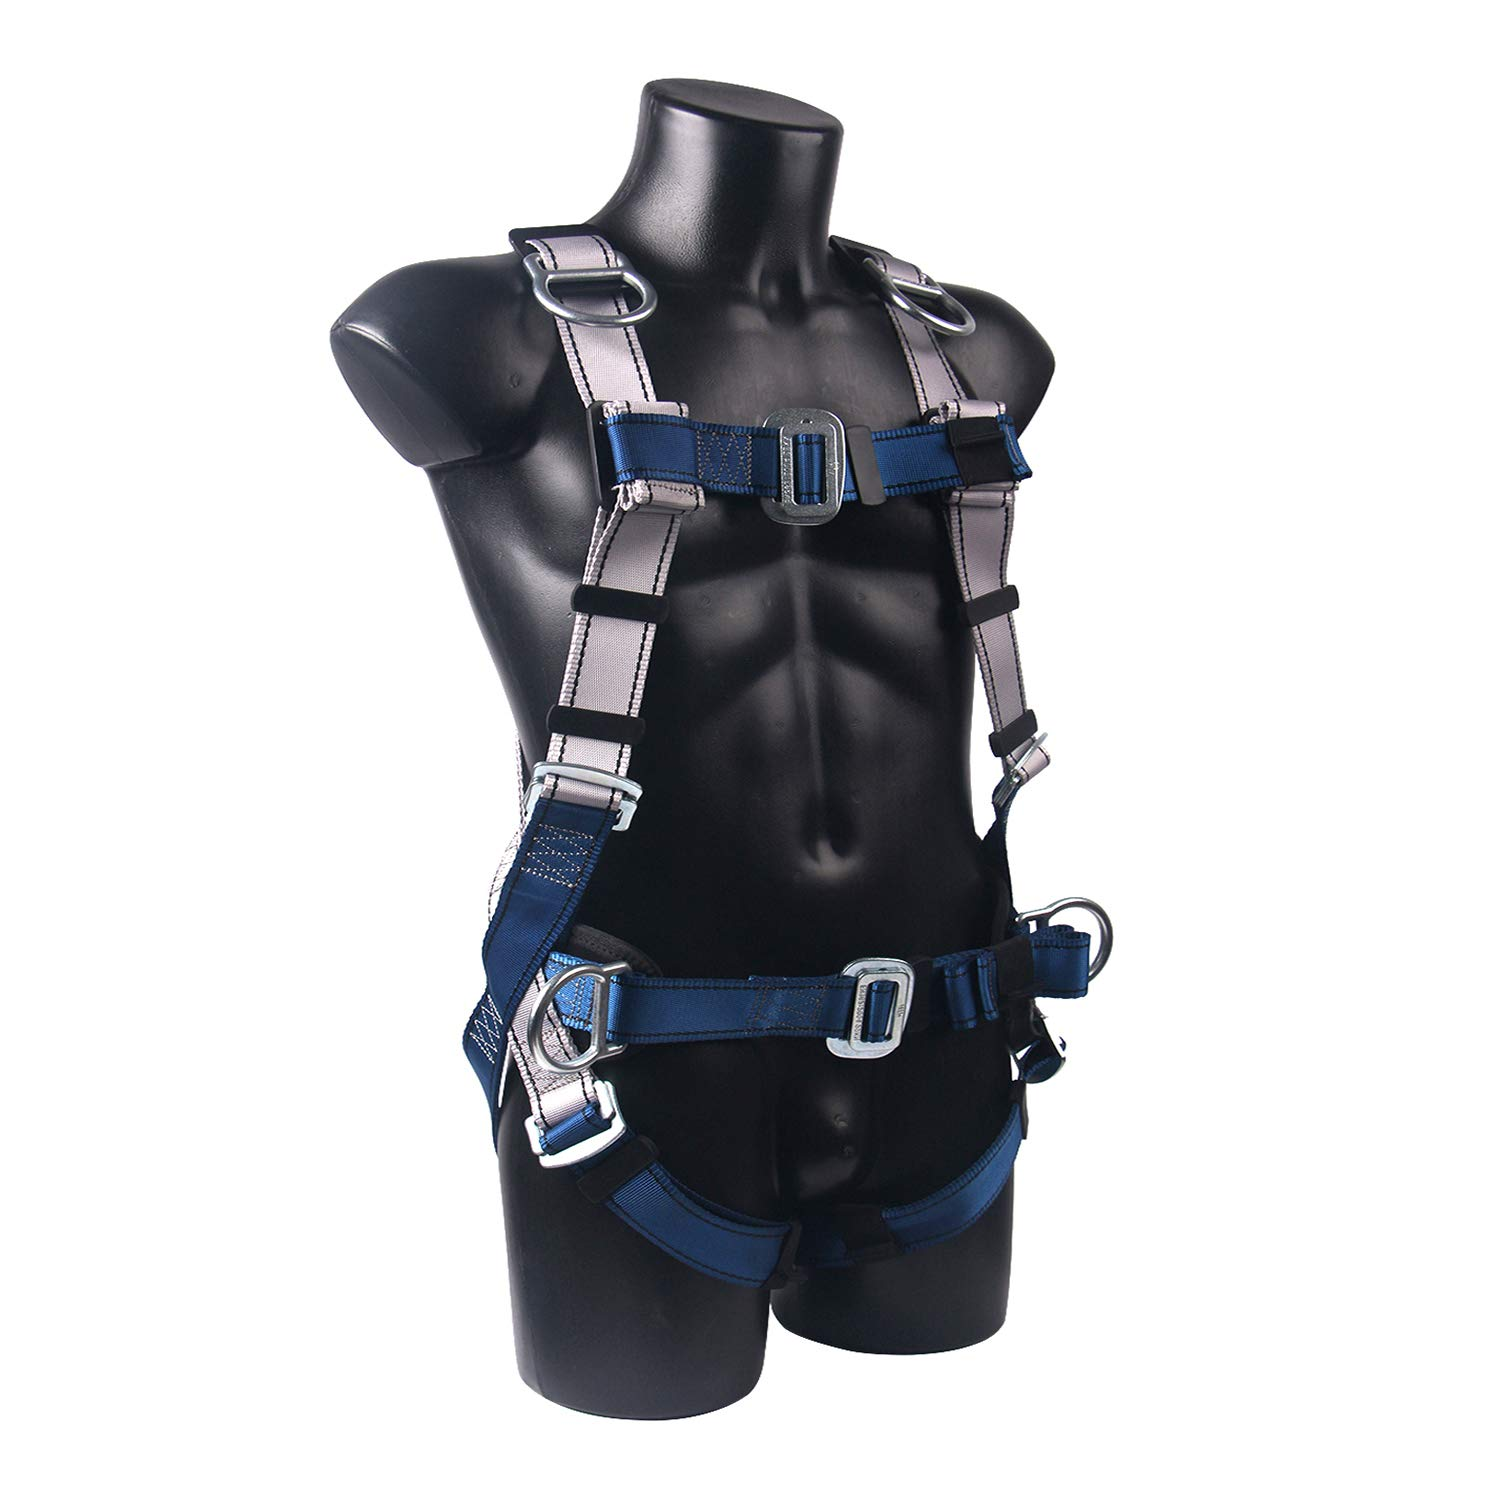 JINGYAT Full Body Safety Harness Fall Protection with 5 D-Ring,Universal Personal Protective Equipment (130-310 pound),Construction Industrial Tower Roofing Tool by JINGYAT